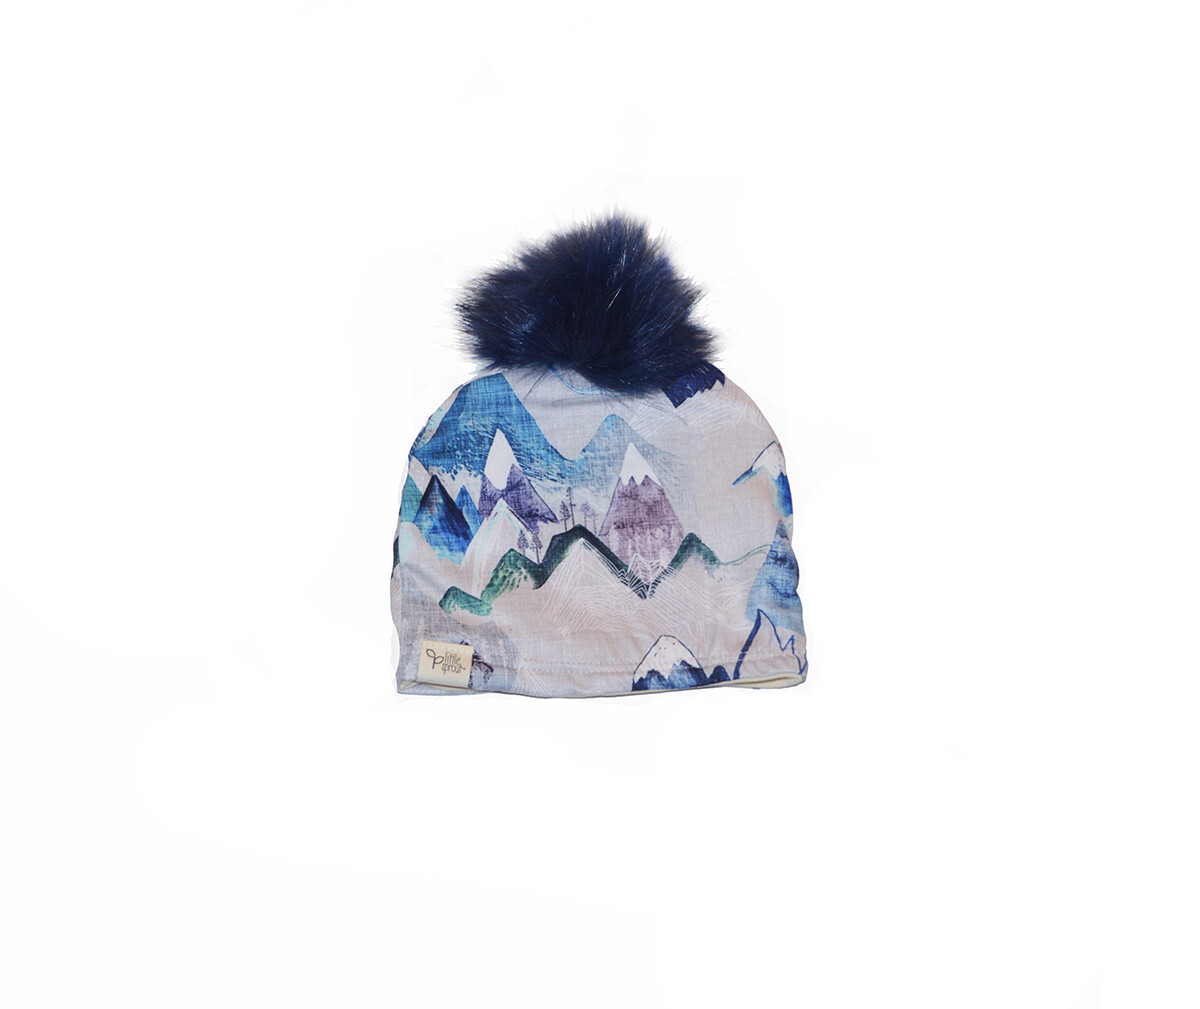 Little Sprout™ Lined Pom-Pom Beanie Hat | Blue Ridge Mountains